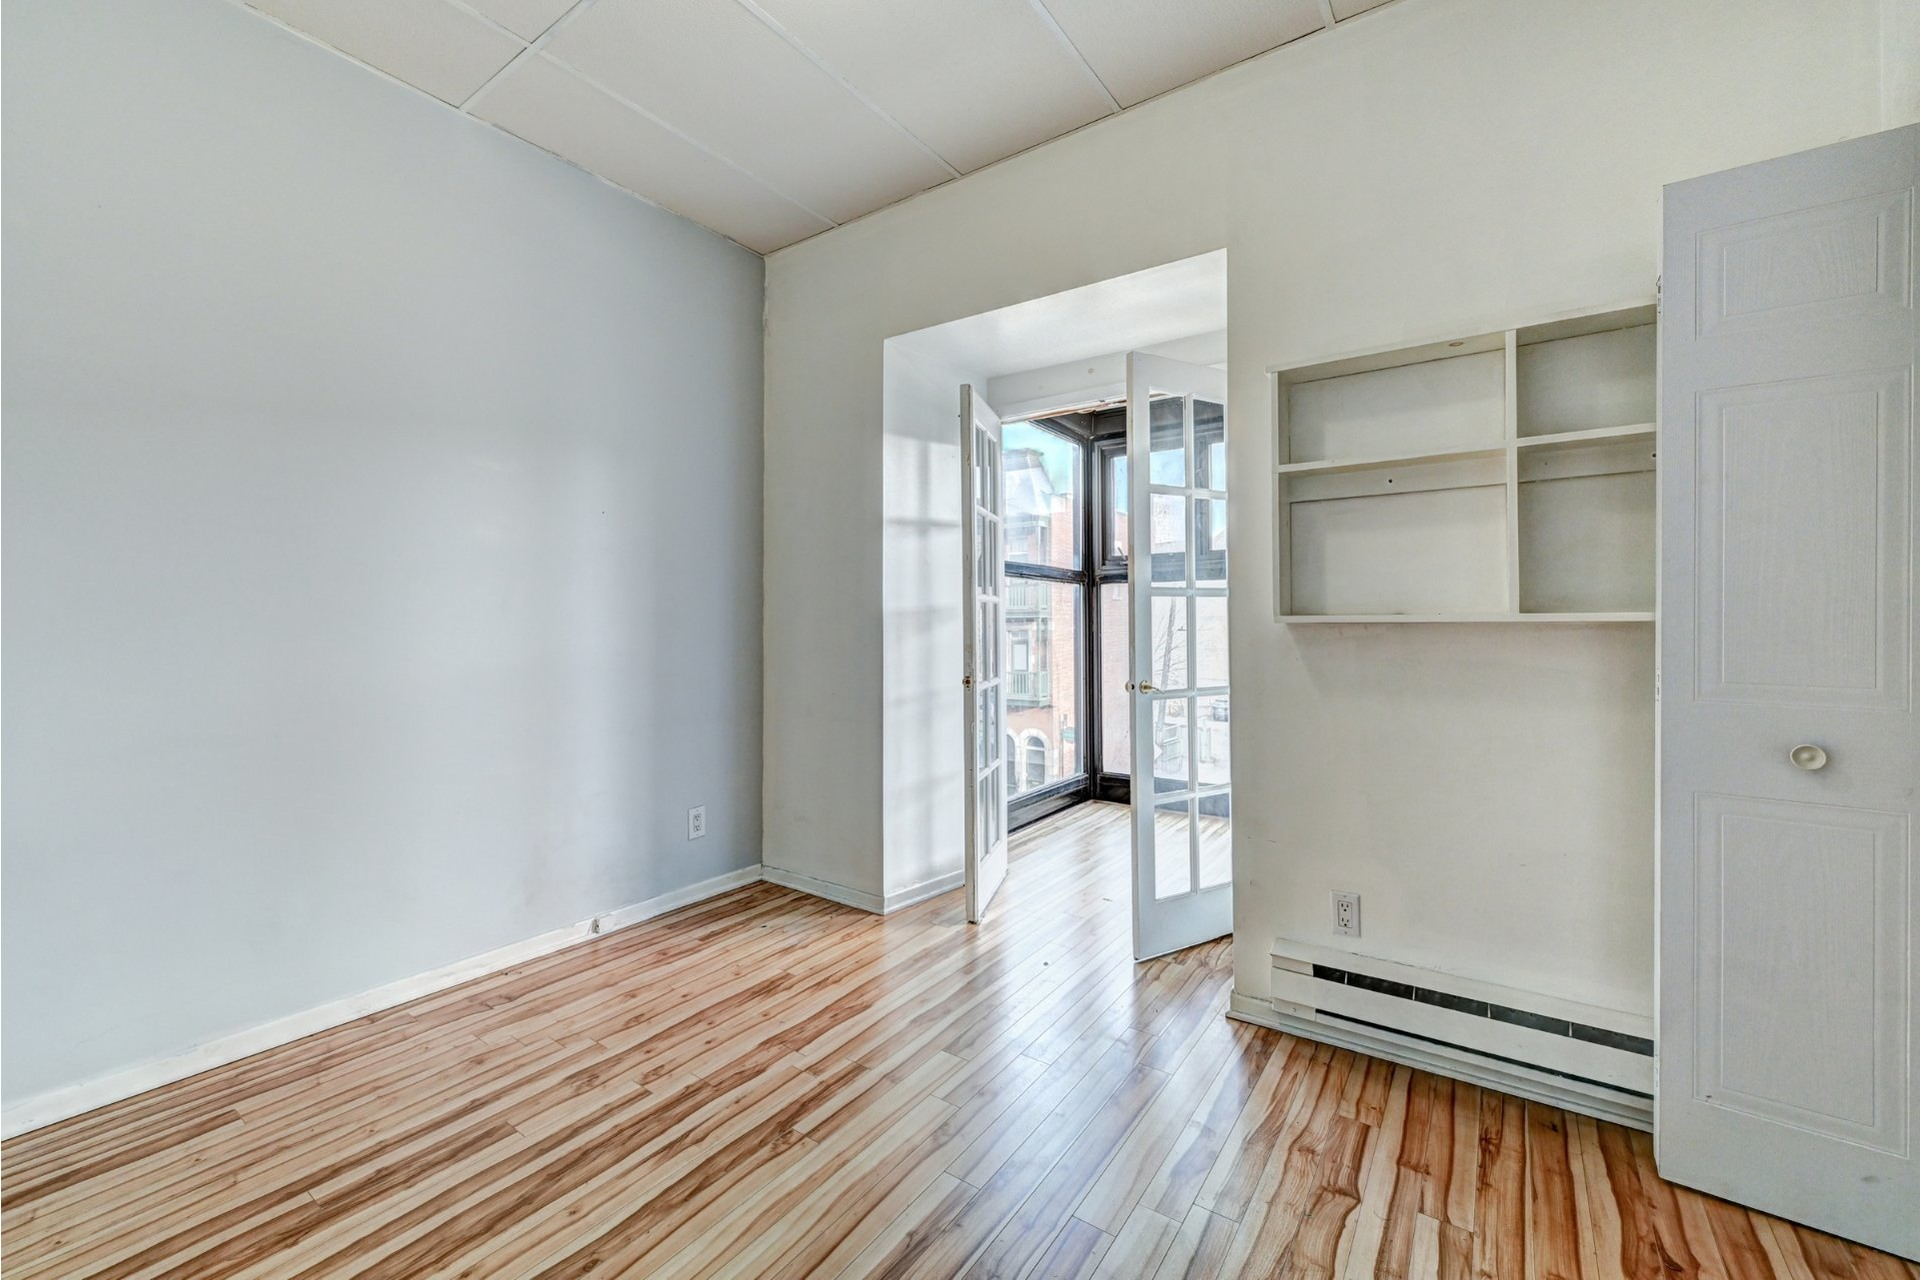 image 18 - Quadruplex For sale Ville-Marie Montréal  - 4 rooms